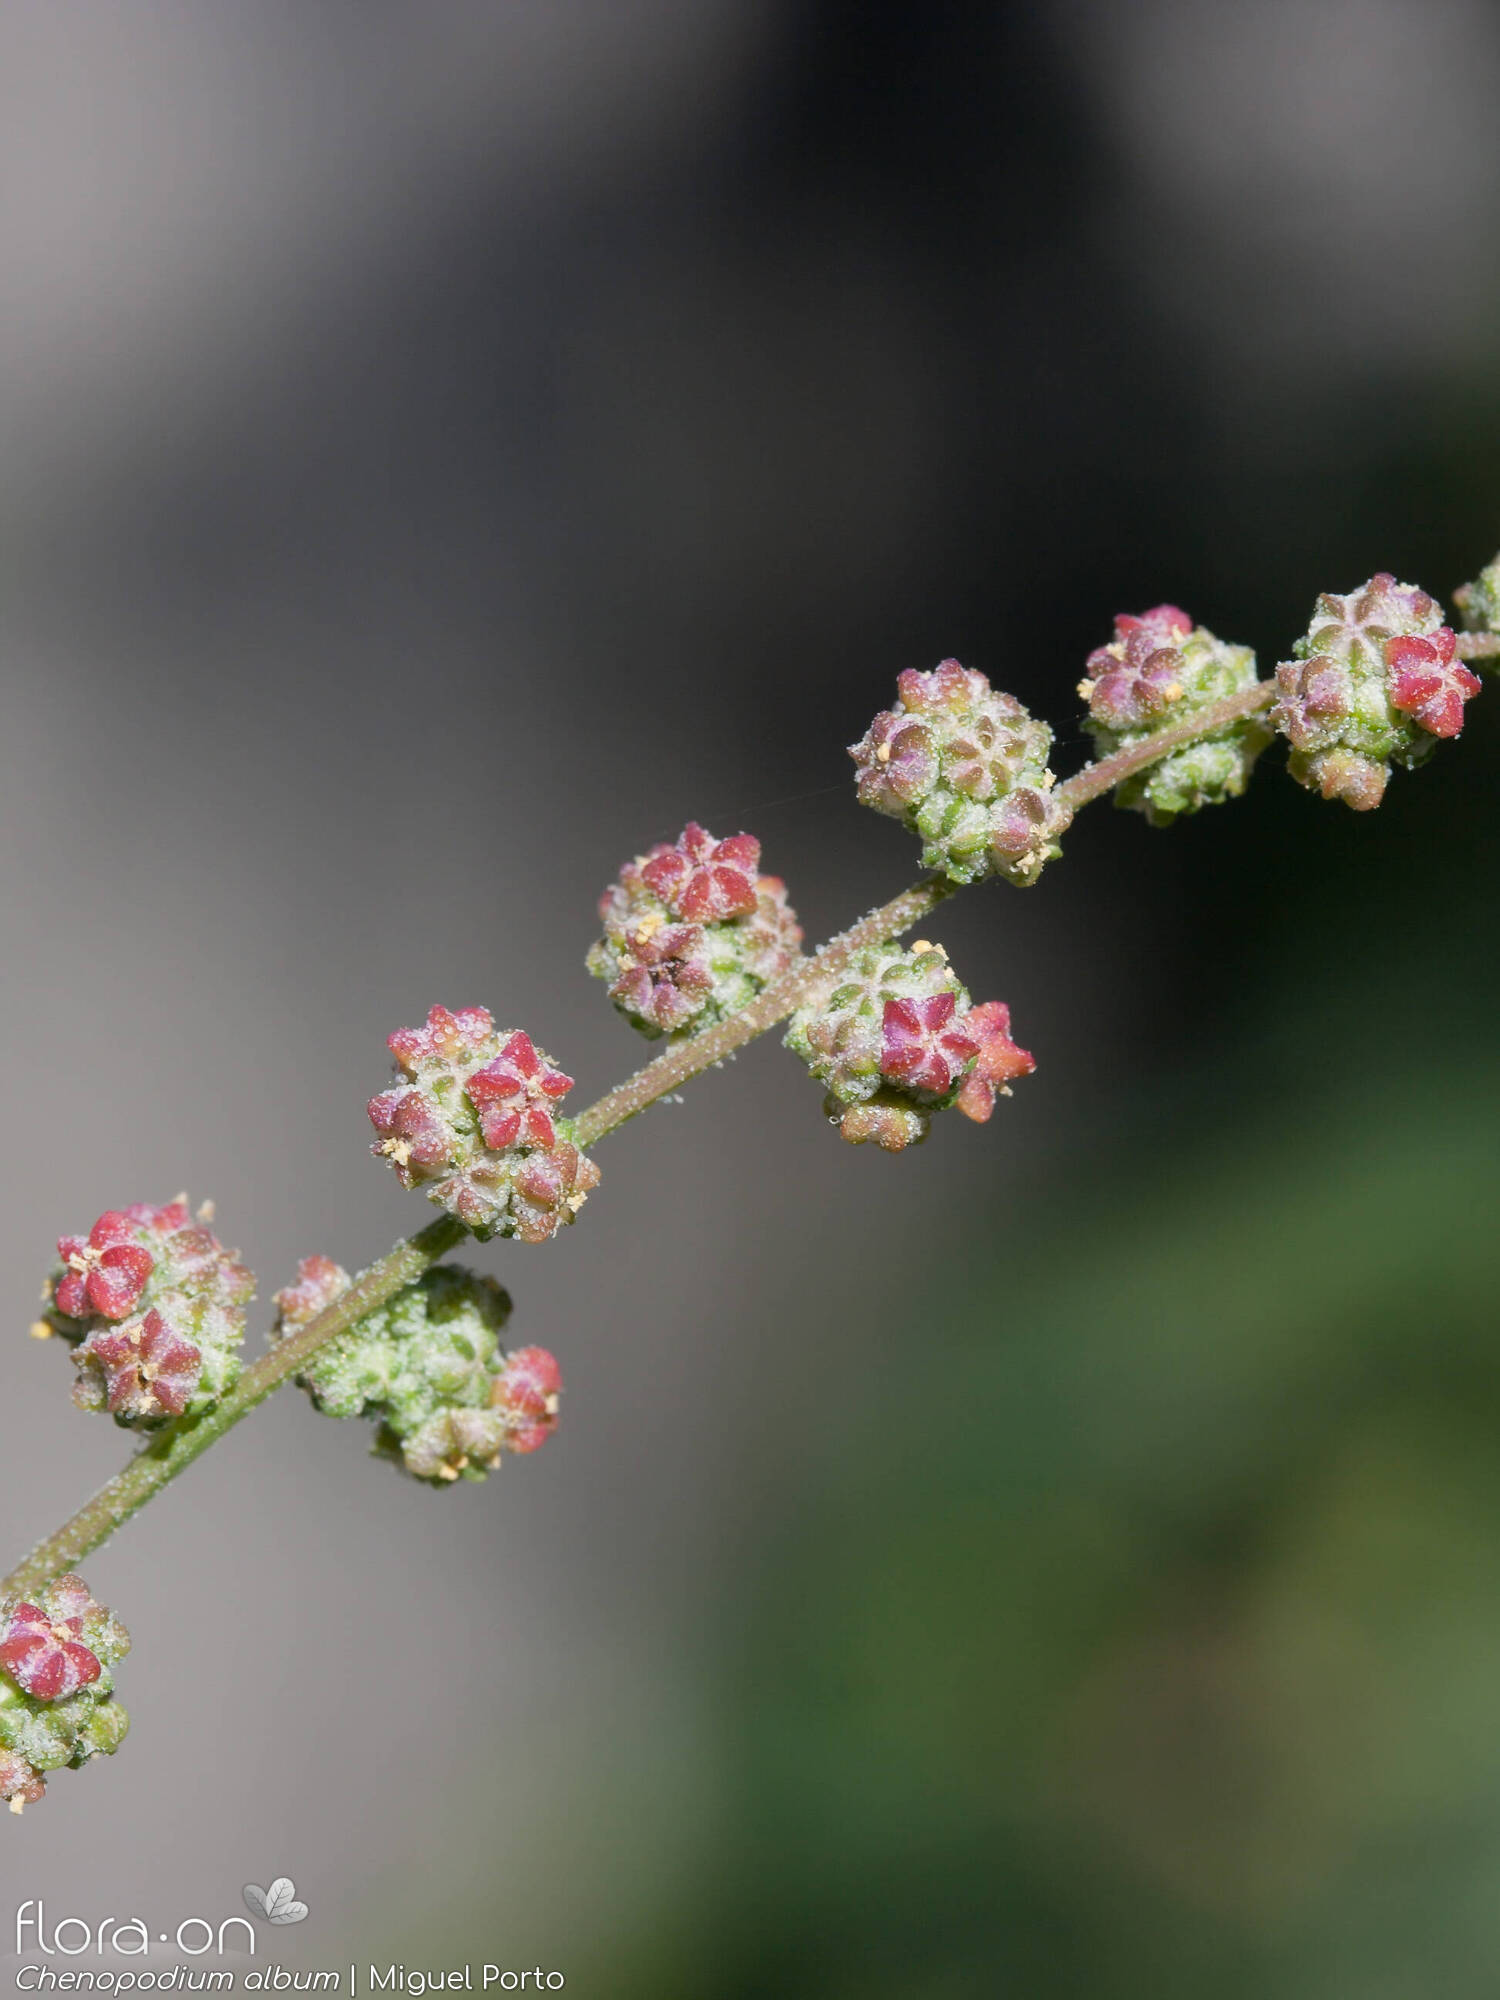 Chenopodium album - Flor (close-up) | Miguel Porto; CC BY-NC 4.0